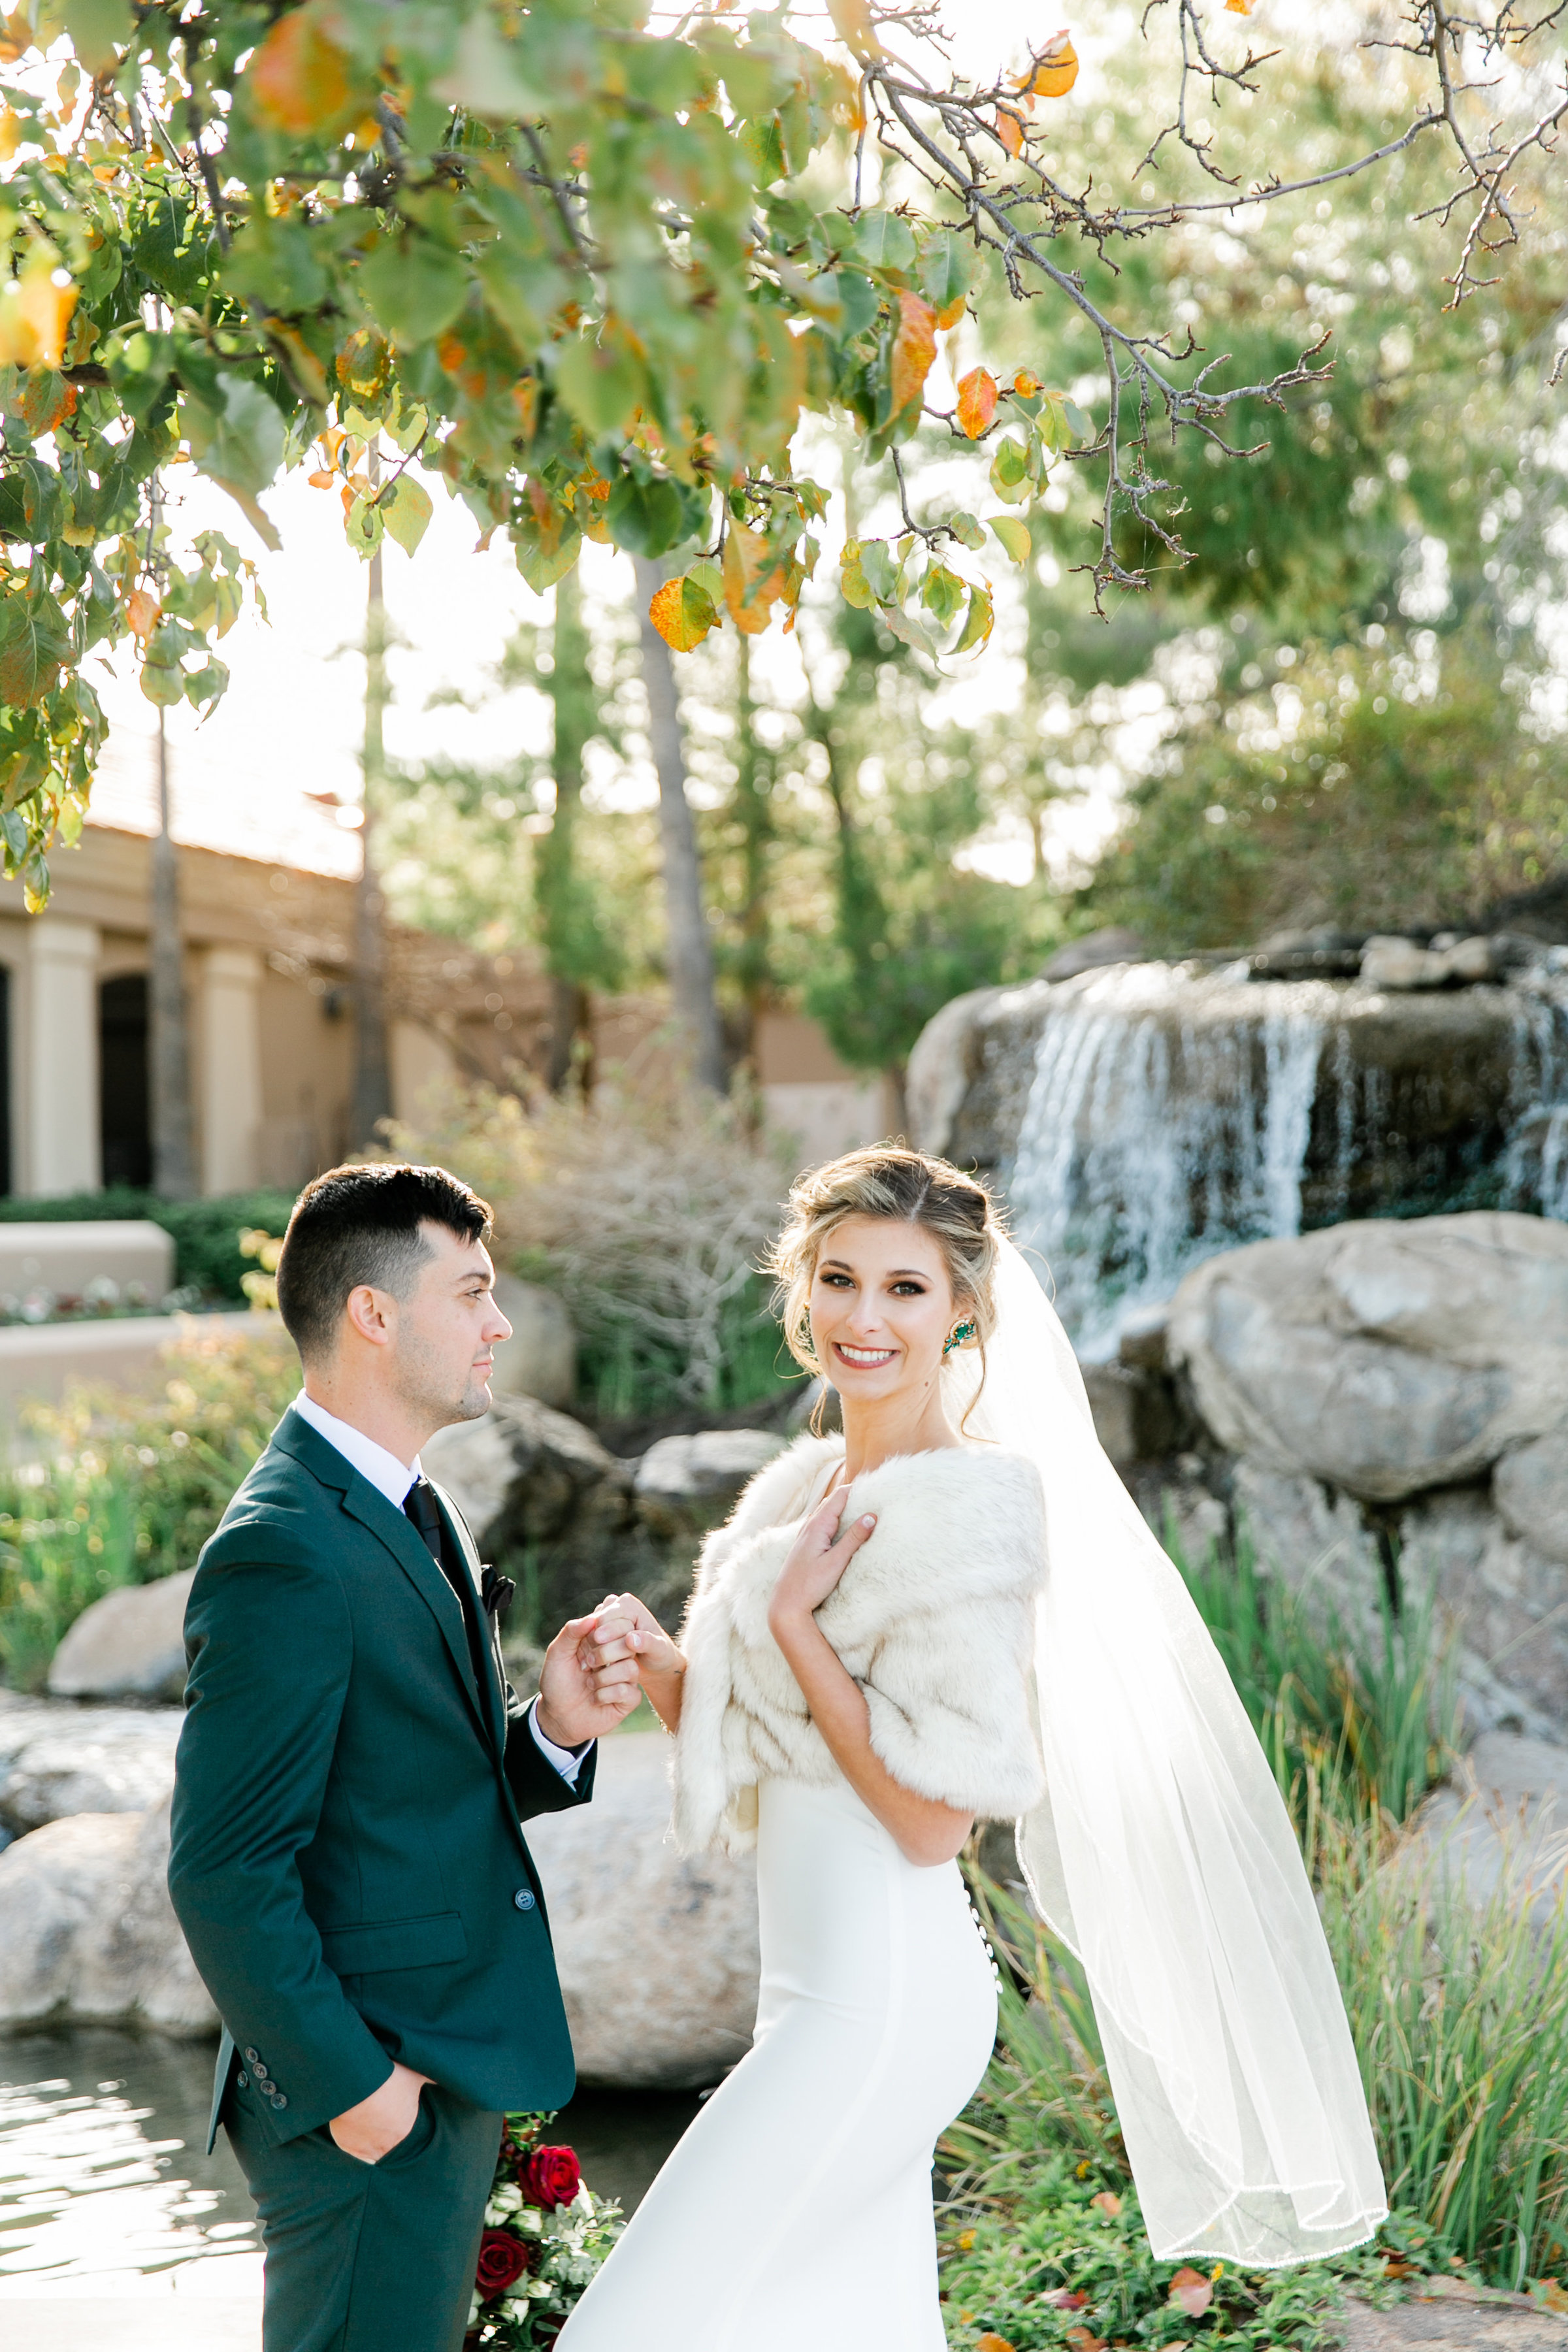 Karlie Colleen Photography - Gilbert Arizona Wedding - Val Vista Lakes - Brynne & Josh-484